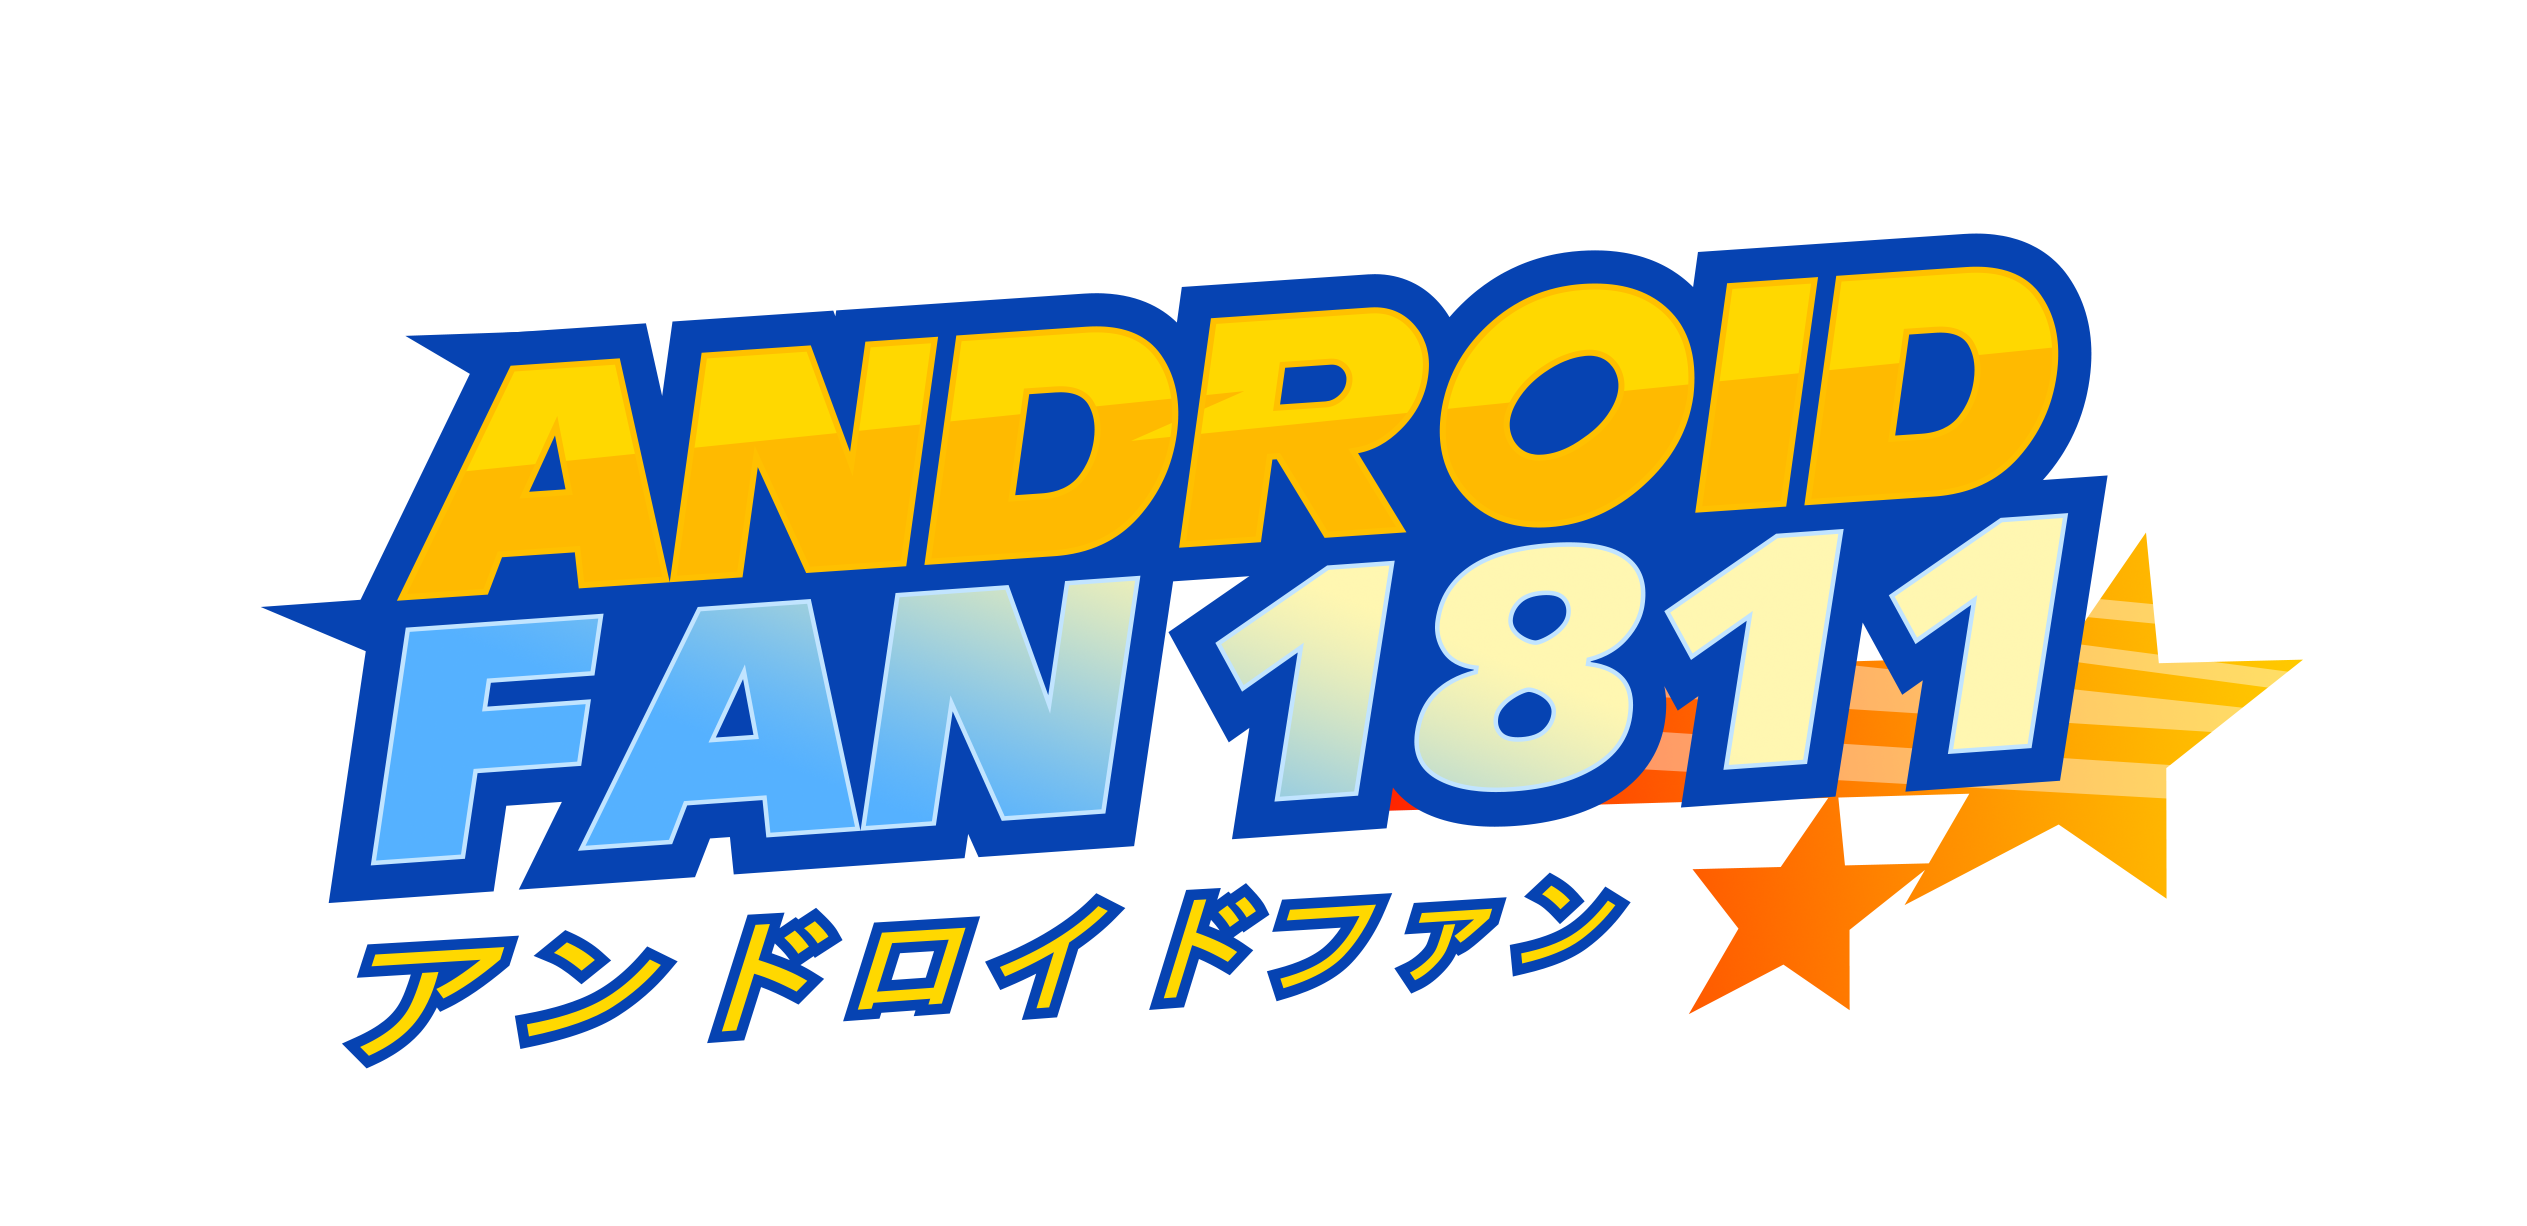 AndroidFan1811 Logo Runner -REQUEST- (Free) by NuryRush